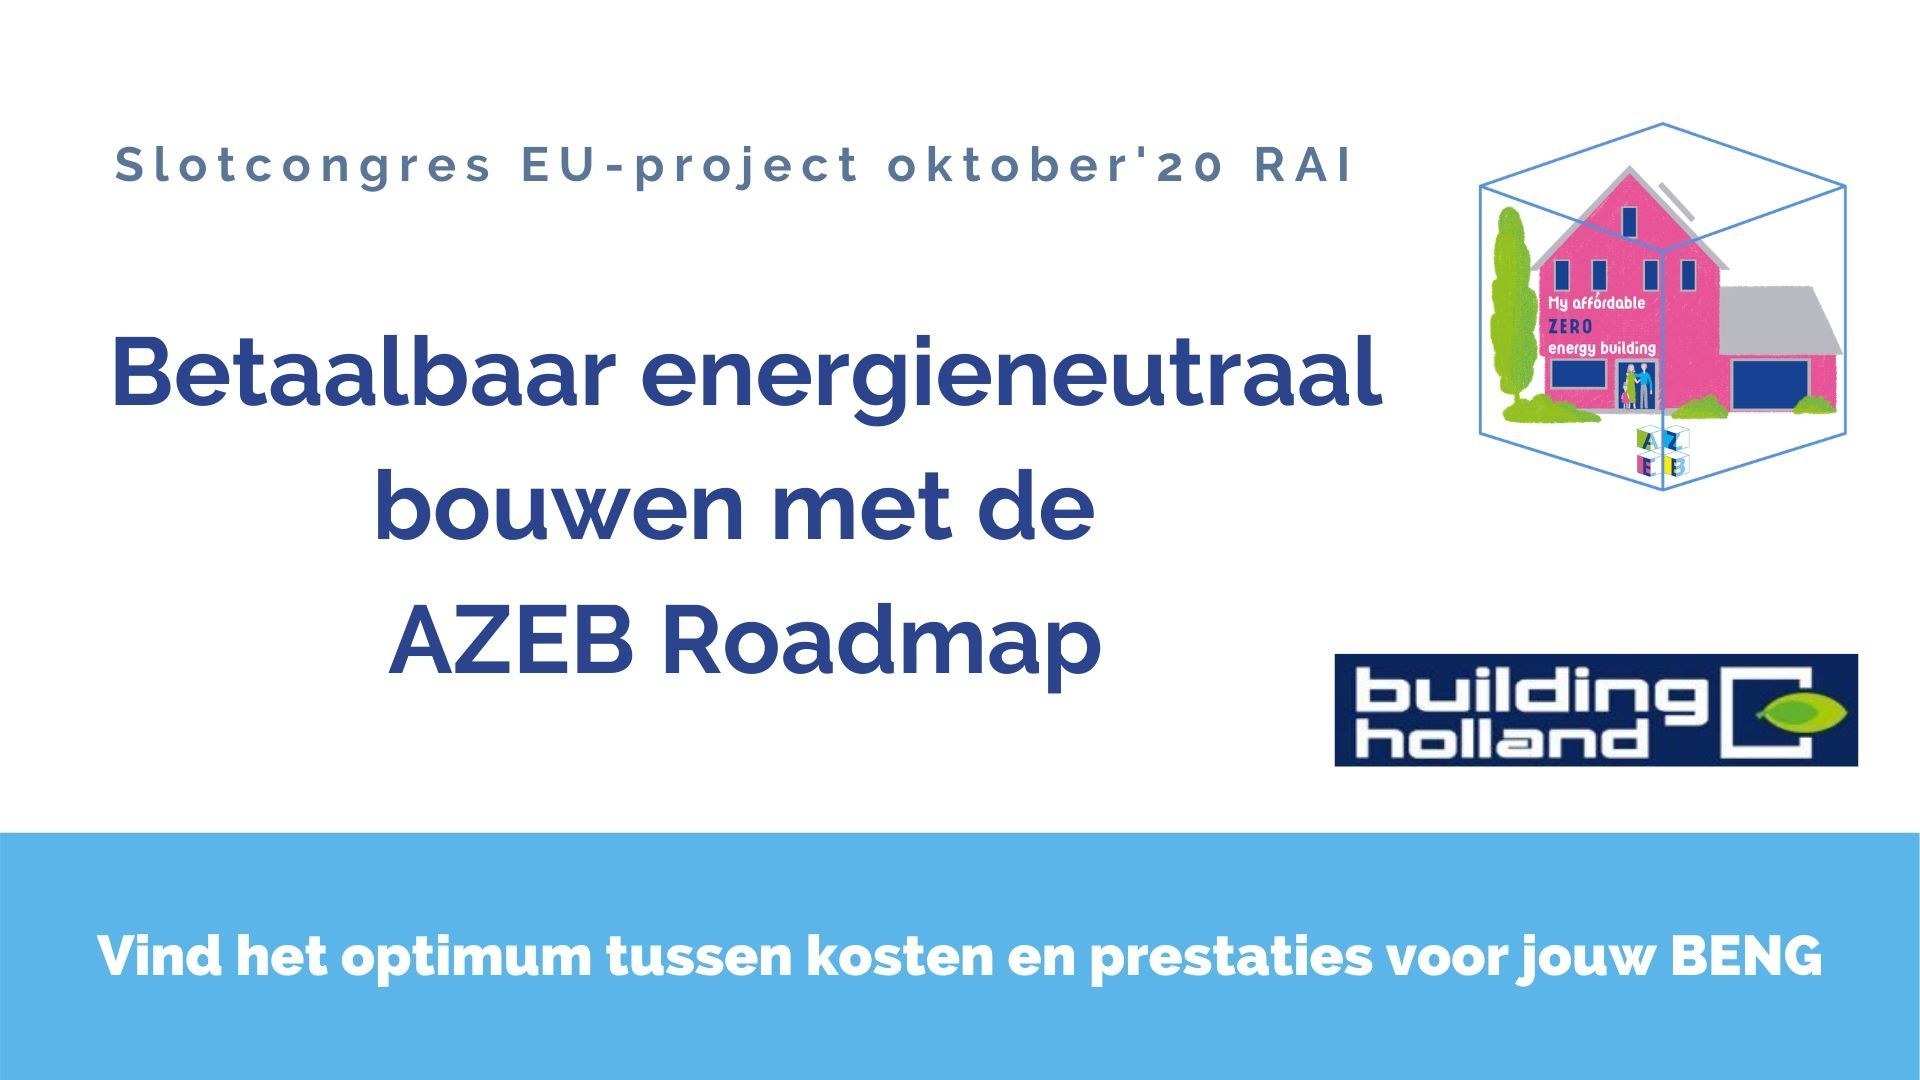 AZEB eind events 2020 in Nederland